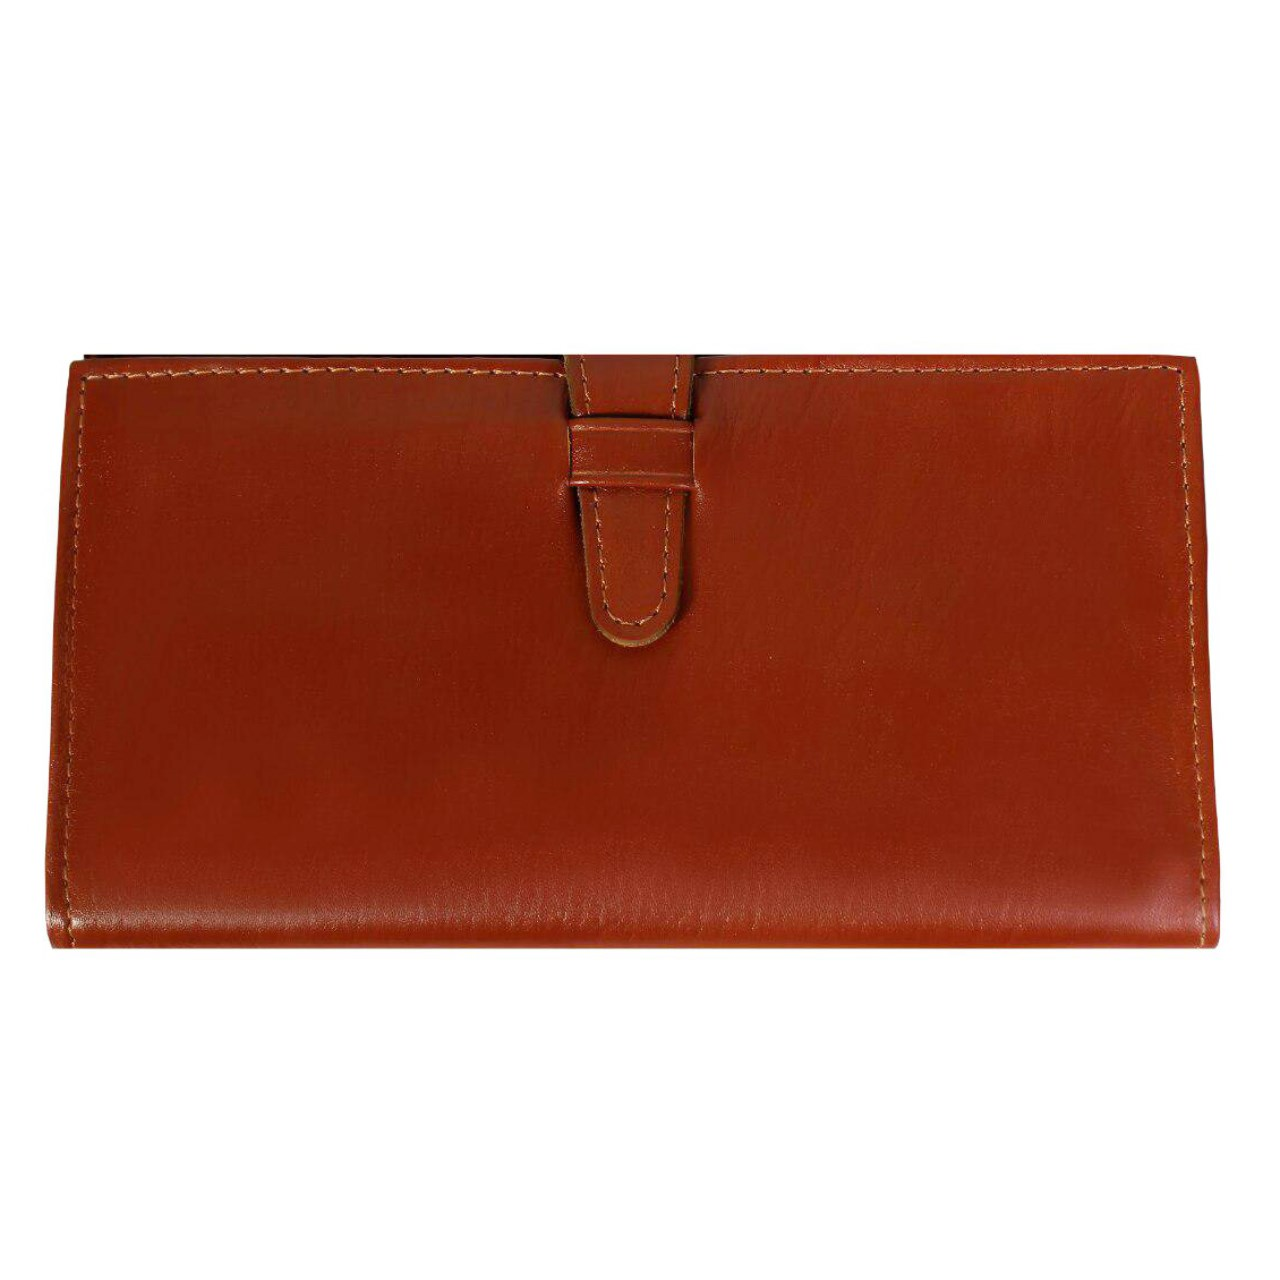 CHARMNAB natural leather wallet, MODIRAN model, code MK10